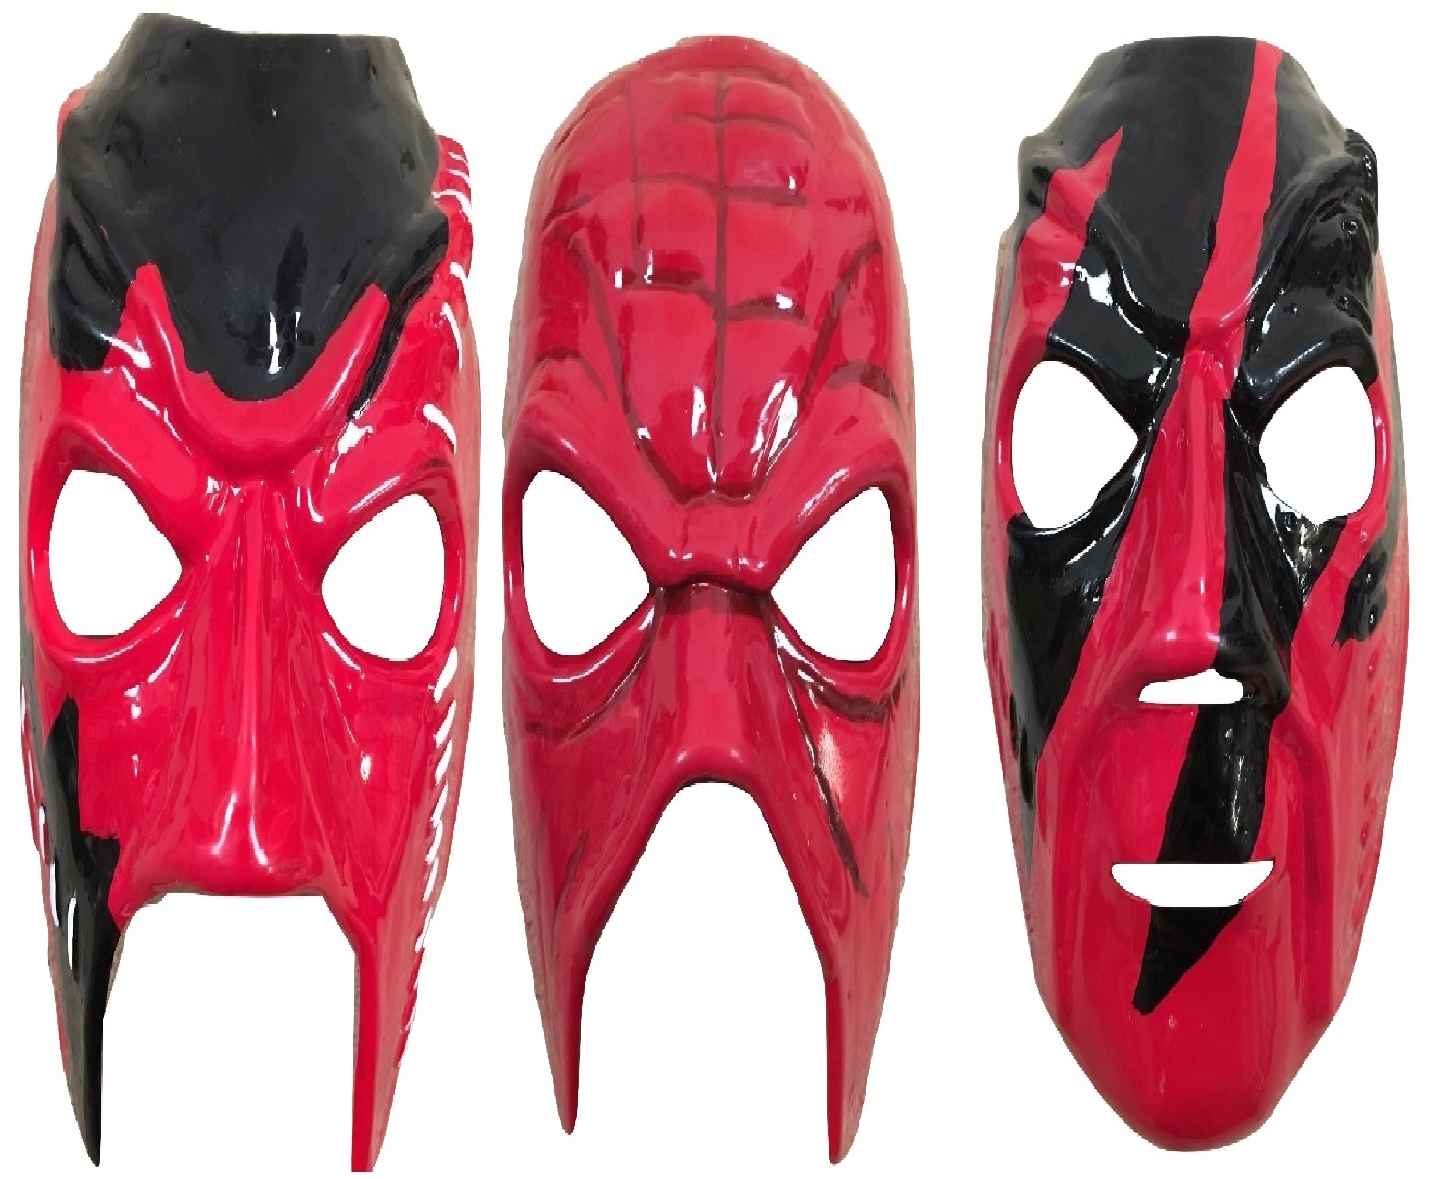 Completo Set UK Kane Wwe Wwf Wrestling Costume Up Maschera Adulti Bambino